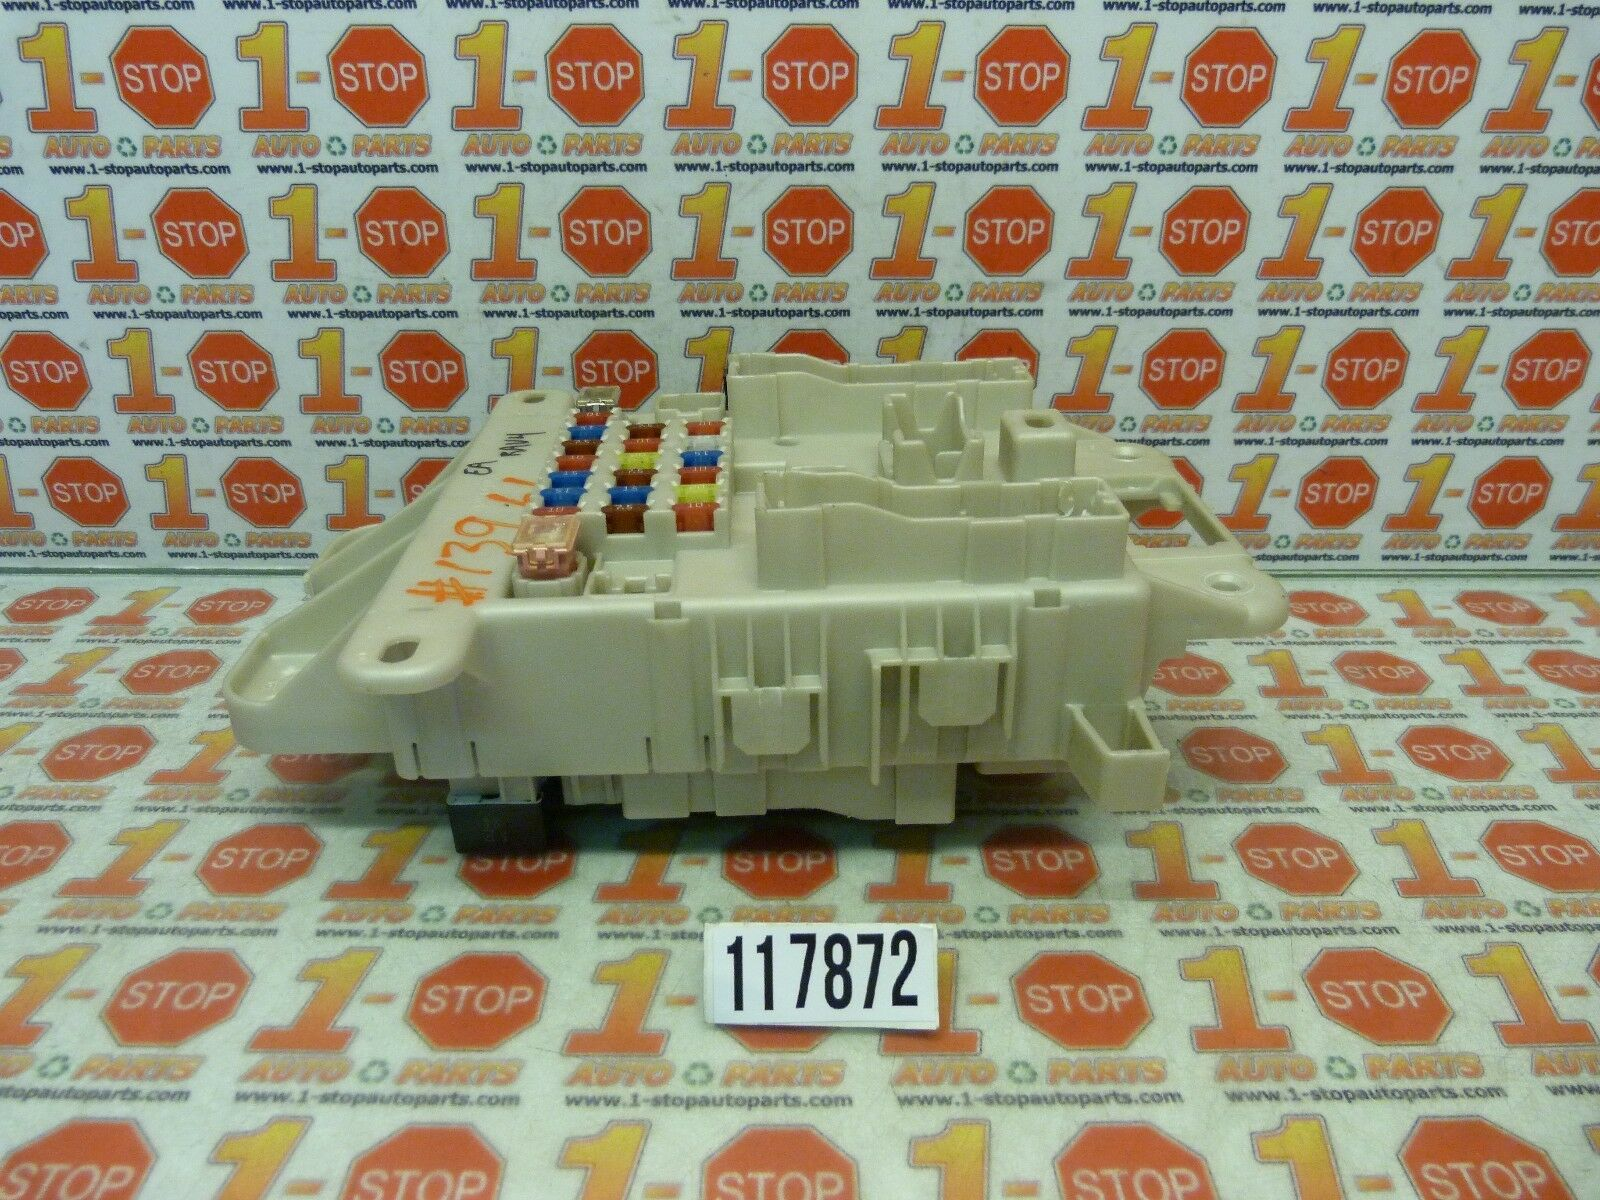 Used 2004 Toyota Rav4 Computers Chips Cruise Control And Related 2001 Relay Rav 4 Under Dash Cabin Fuse Box 82721 42020 Oem